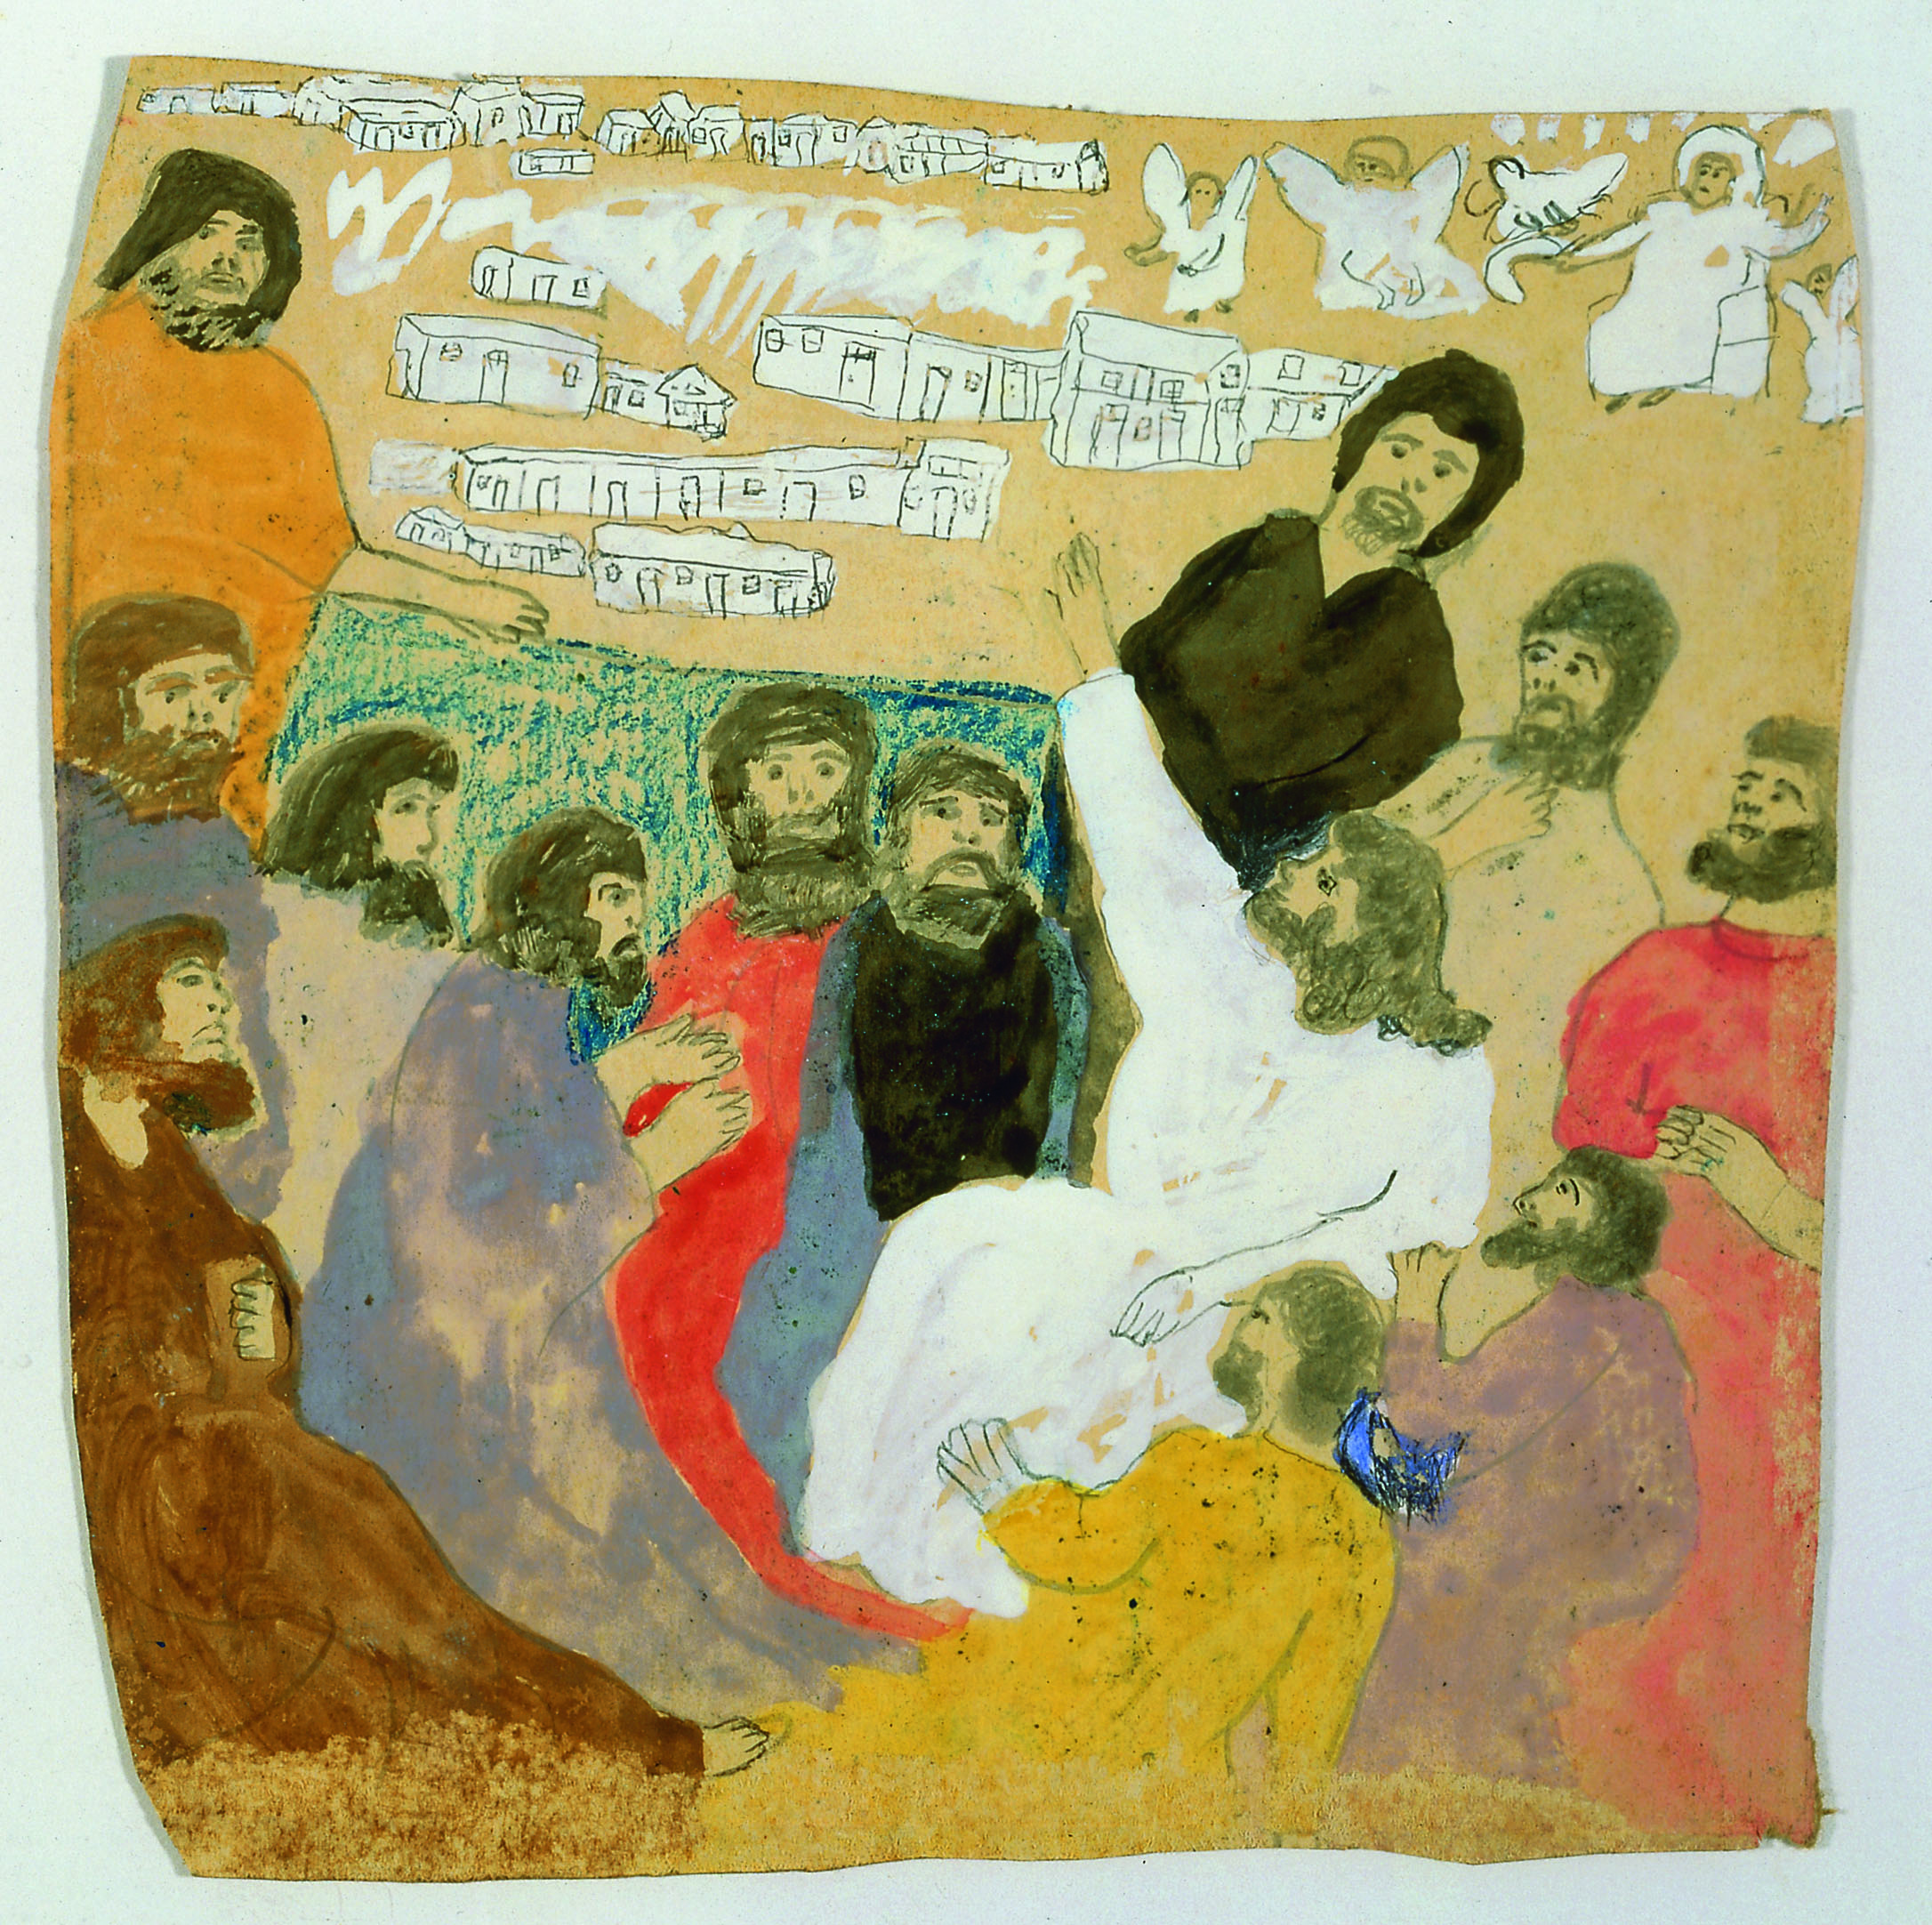 Mixed media work by Gertrude Morgan featuring gathering of men